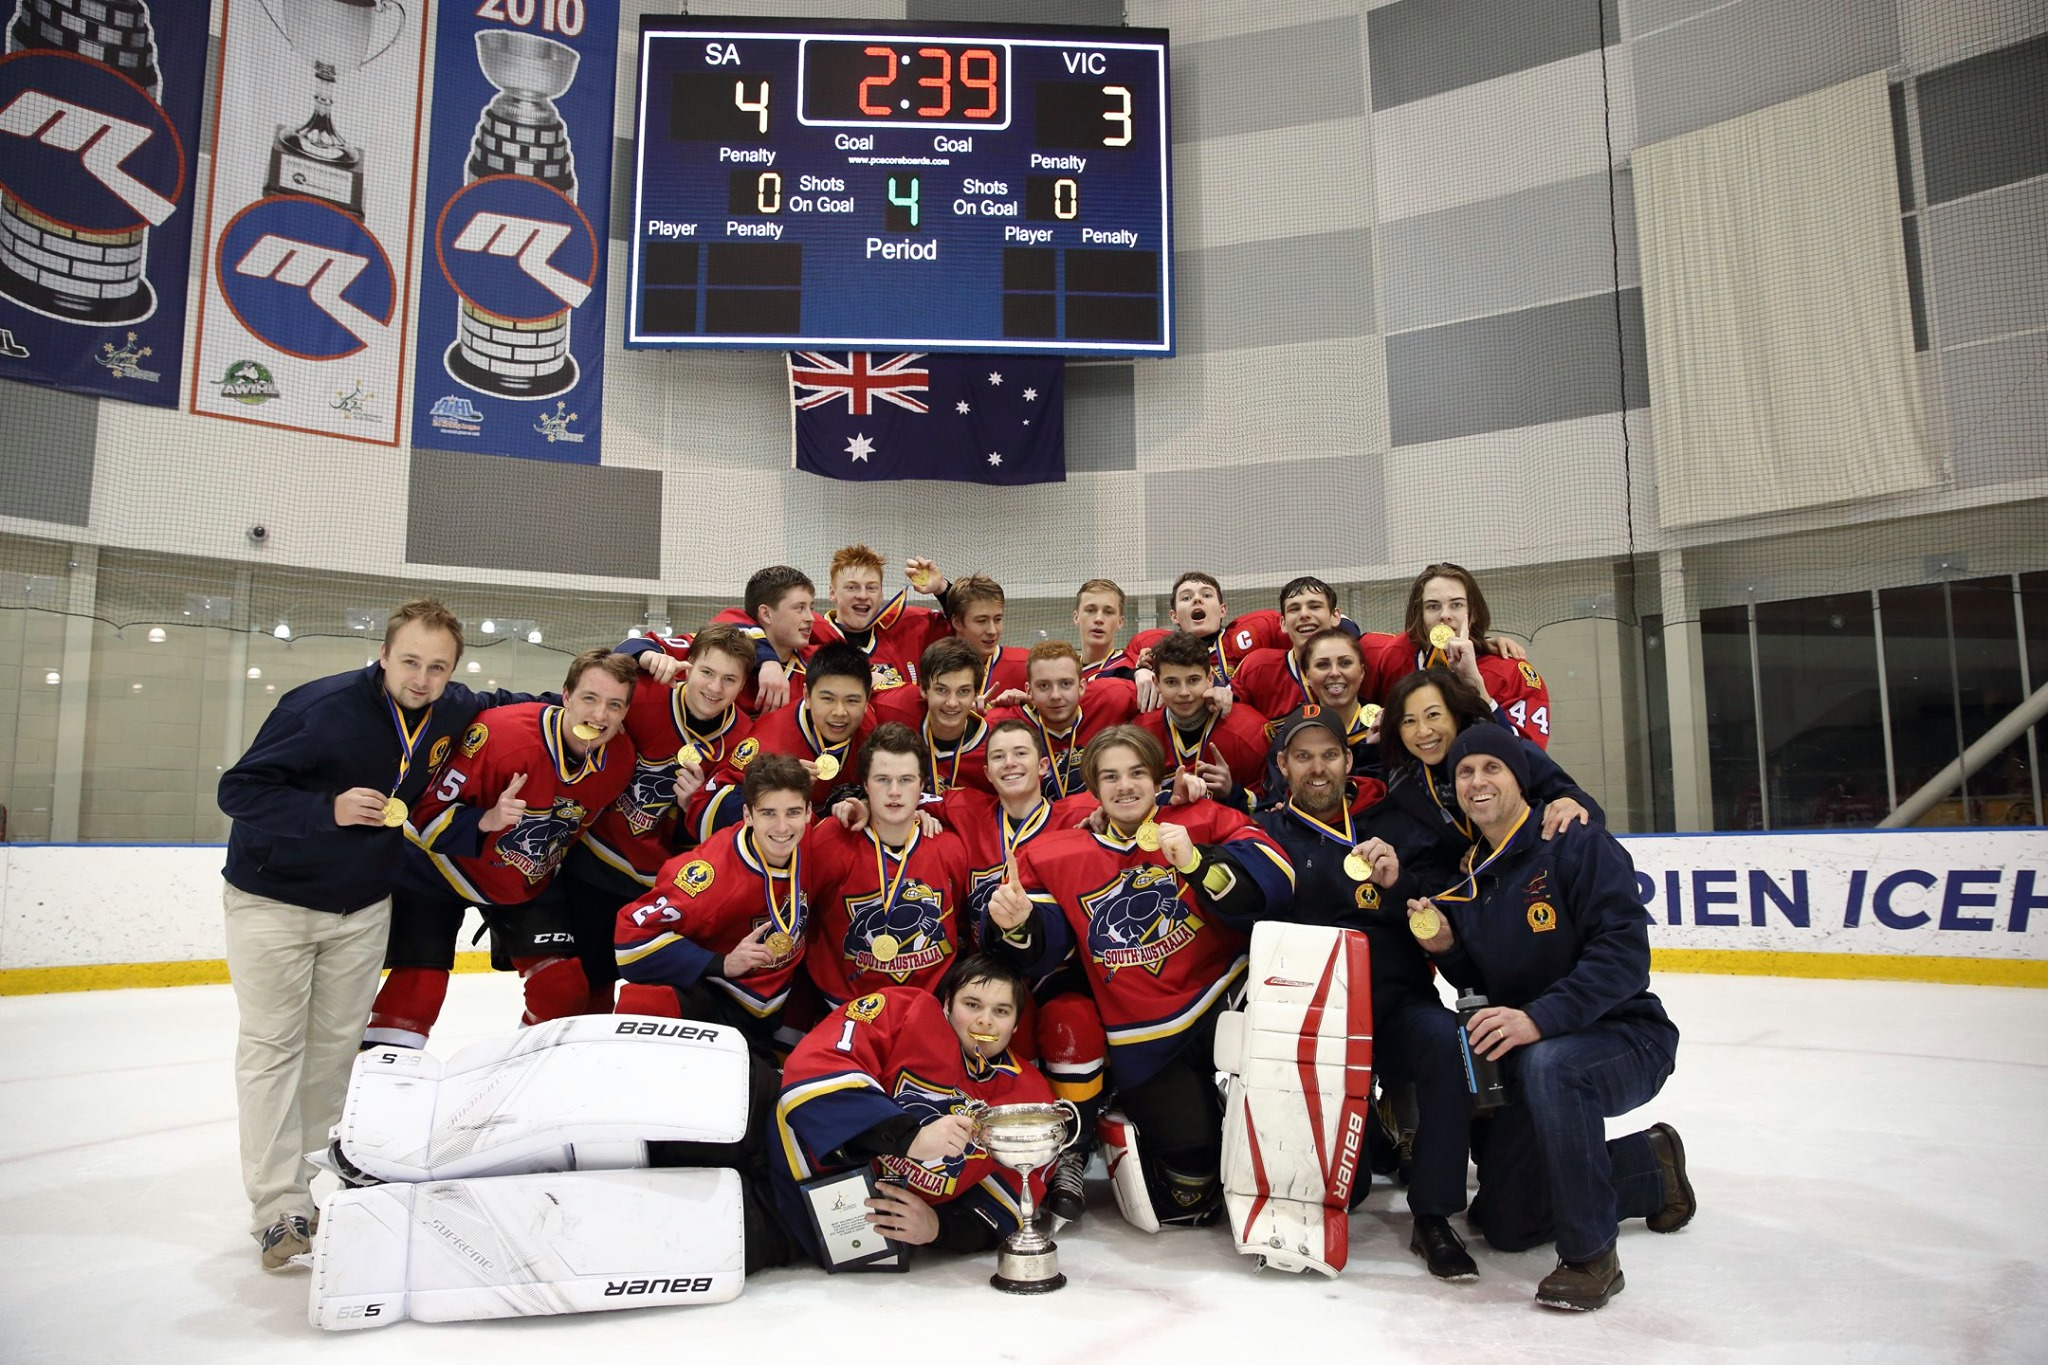 Tange 18 and Under Midgets - Ice Hockey Australia